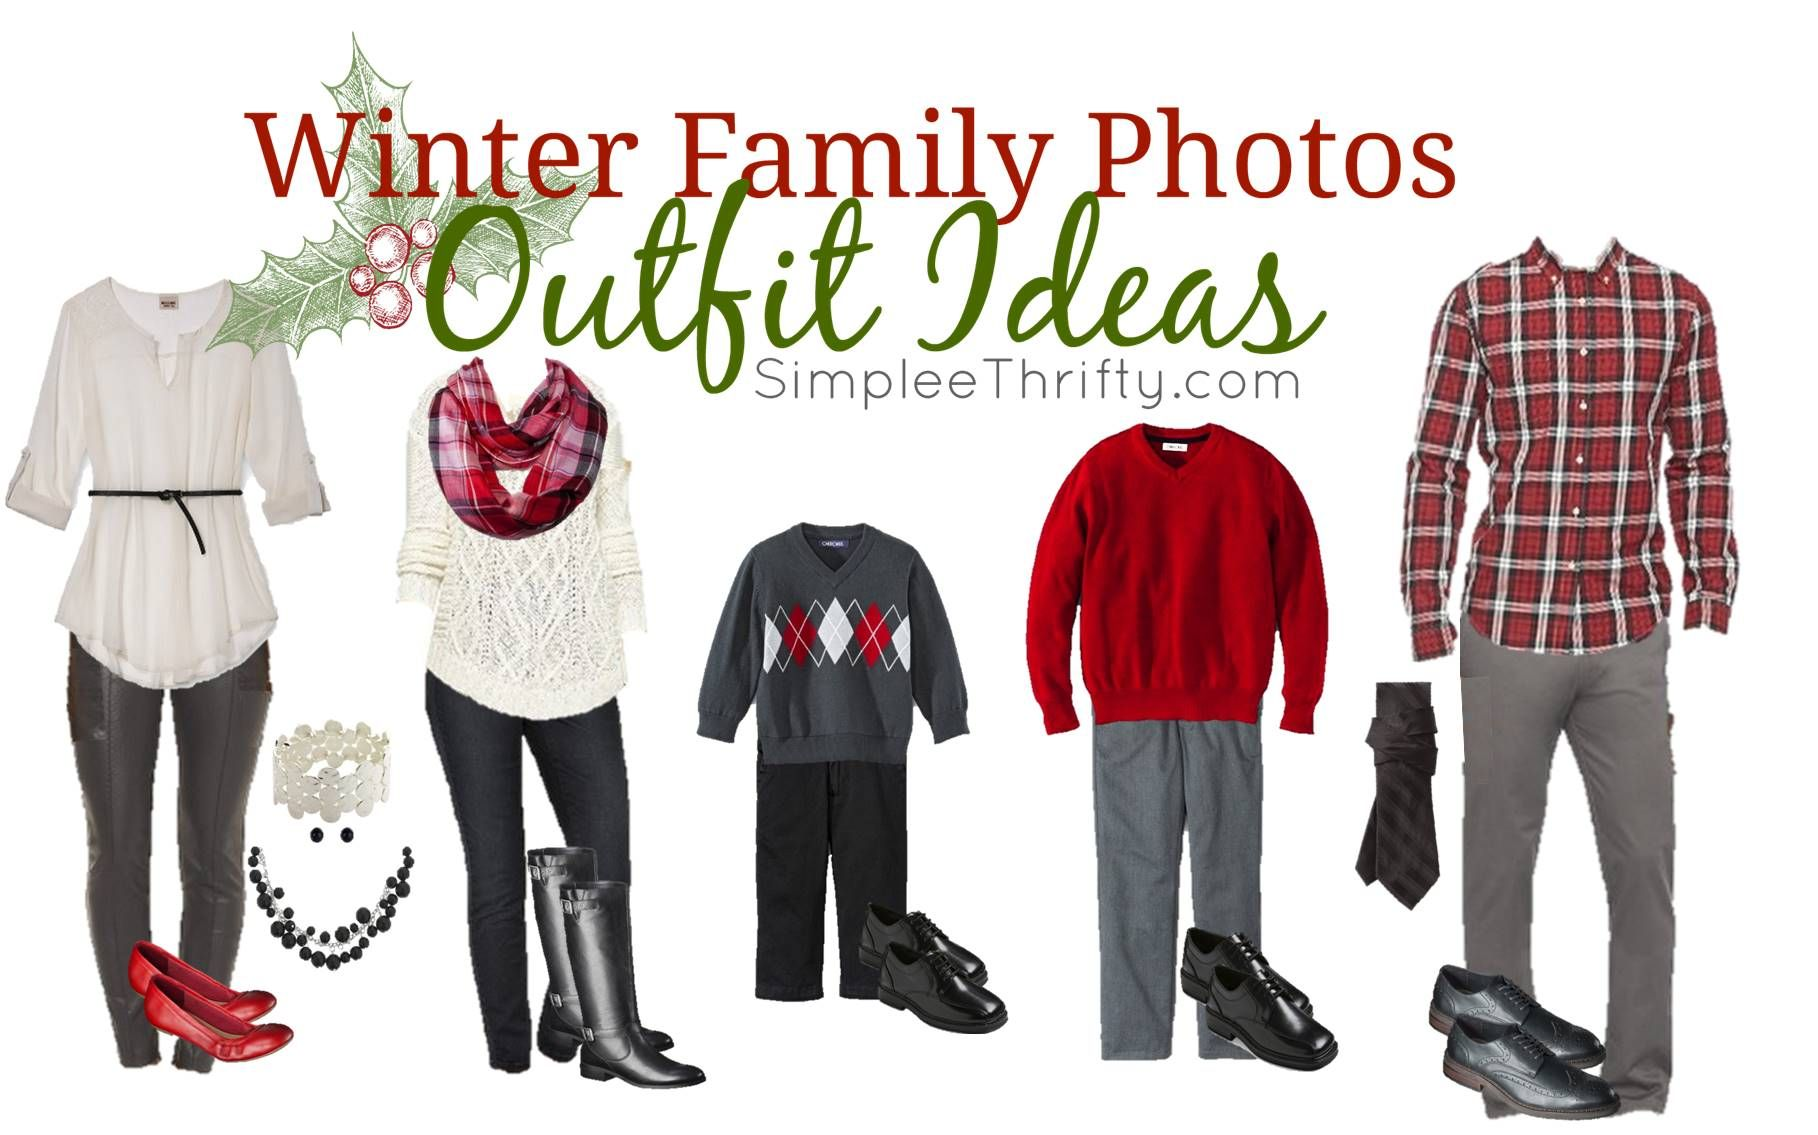 Winter Family Photos Outfit Ideas #familyphotooutfits